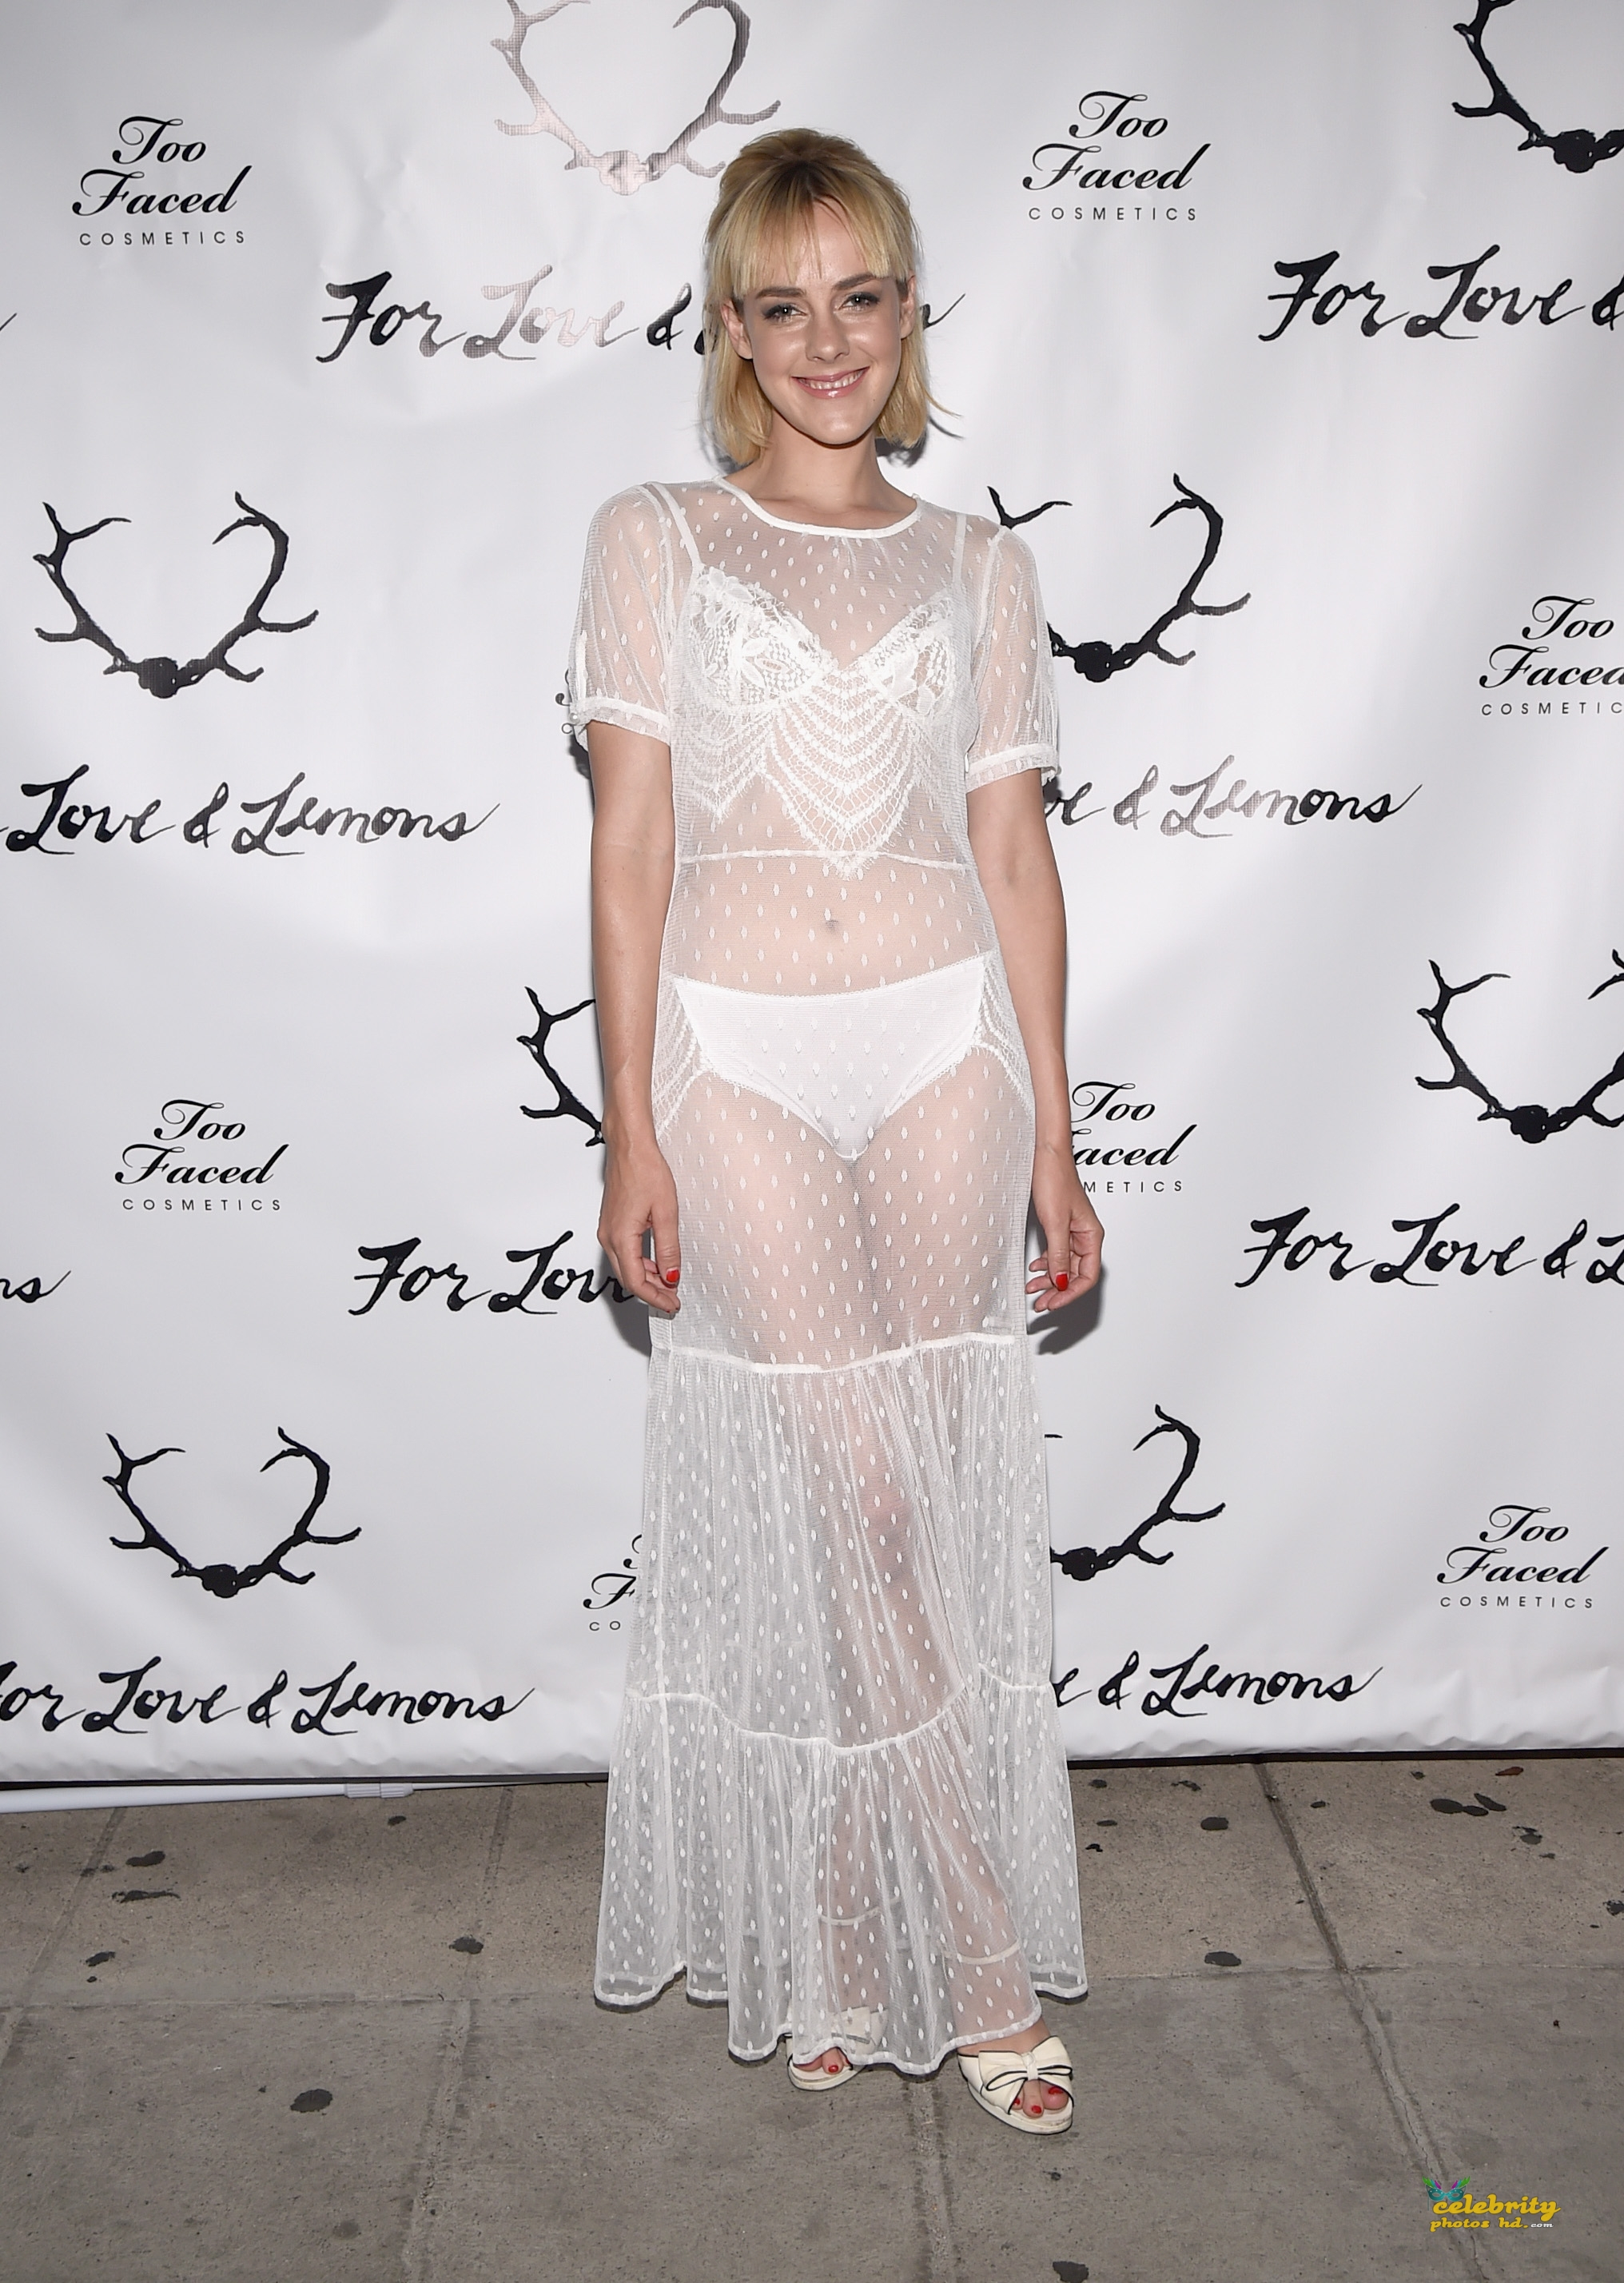 LOS ANGELES, CA - JULY 31:  Co-host Jena Malone attends For Love and Lemons annual SKIVVIES party co-hosted by Too Faced and performance by The Shoe at The Carondelet House on July 31, 2014 in Los Angeles, California.  (Photo by Michael Buckner/Getty Images For Love & Lemons)